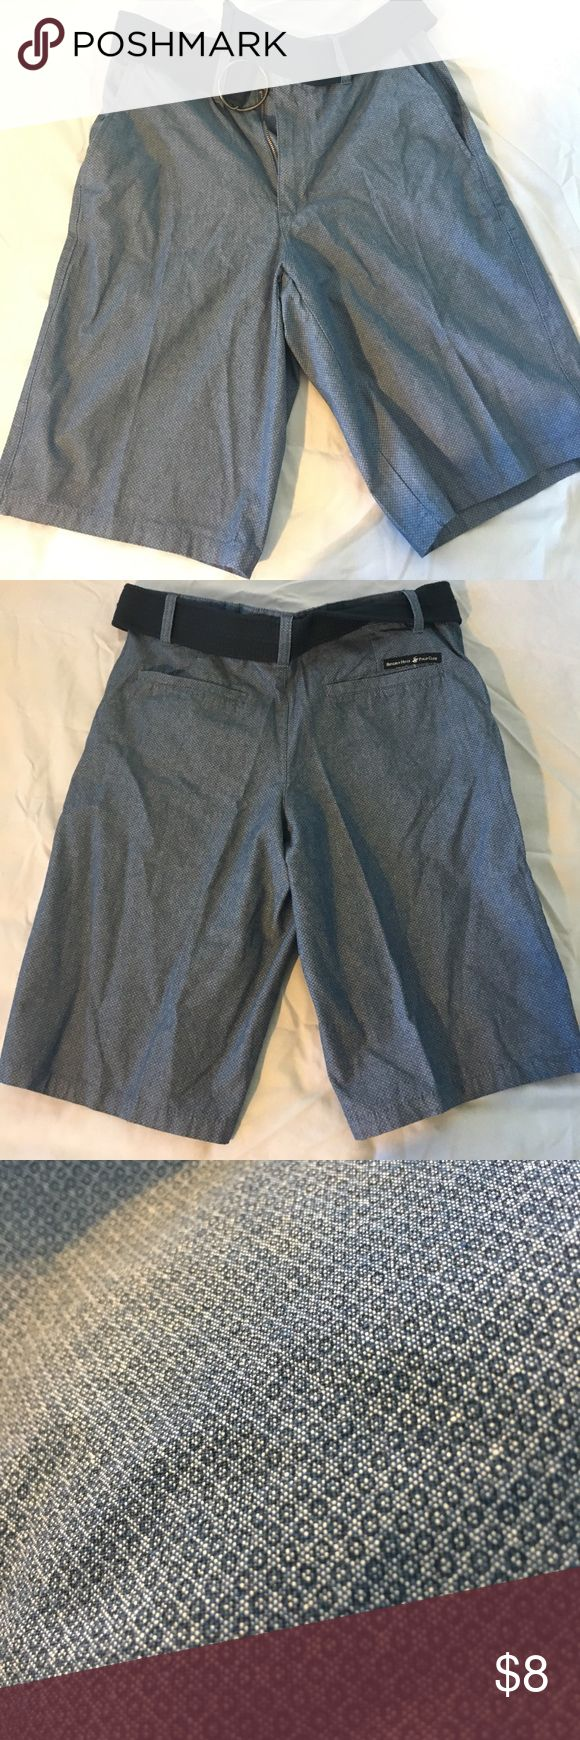 Beverly Hills Polo Club Shorts From the Company Beverly Hills Polo, Size 30 shorts. They have little detail all over the short and belt is included. NEVER BEEN WORN! Beverly Hills Polo Club Shorts Flat Front